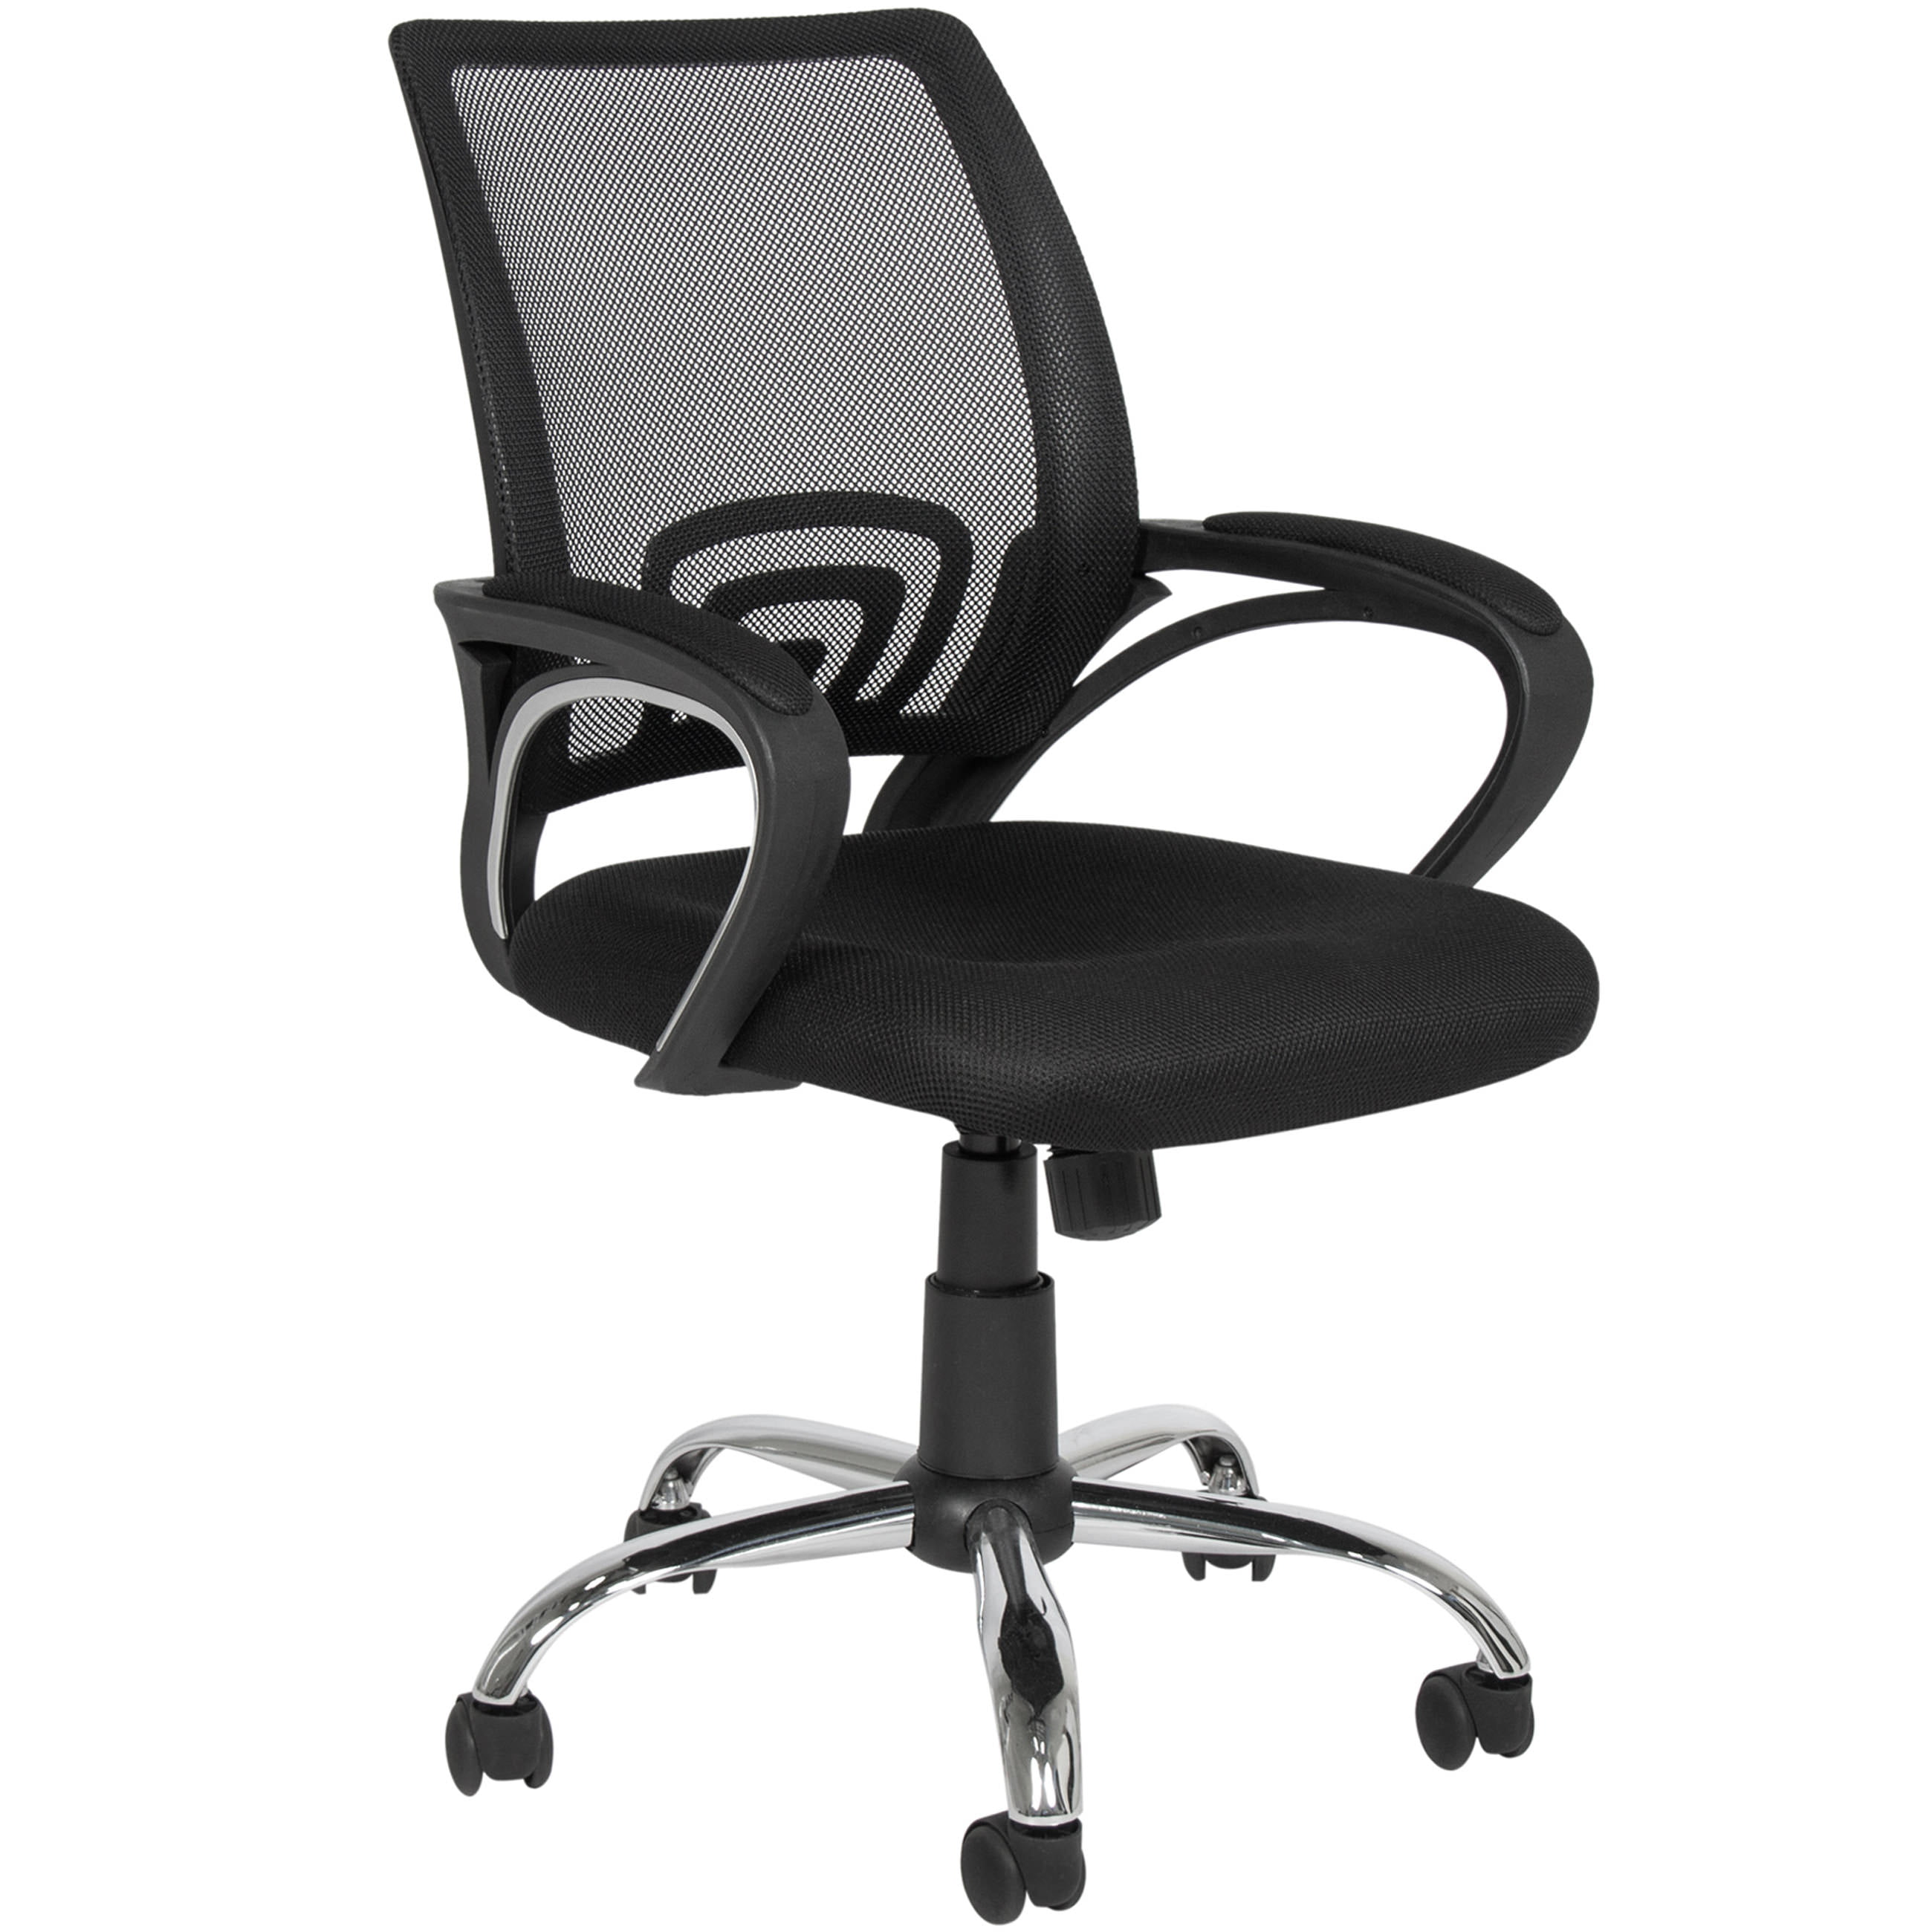 Office Chair Armrest Best Choice Products Ergonomic Mesh Computer Office Desk Task Midback Task  Chair w-Metal Base New - Walmart.com